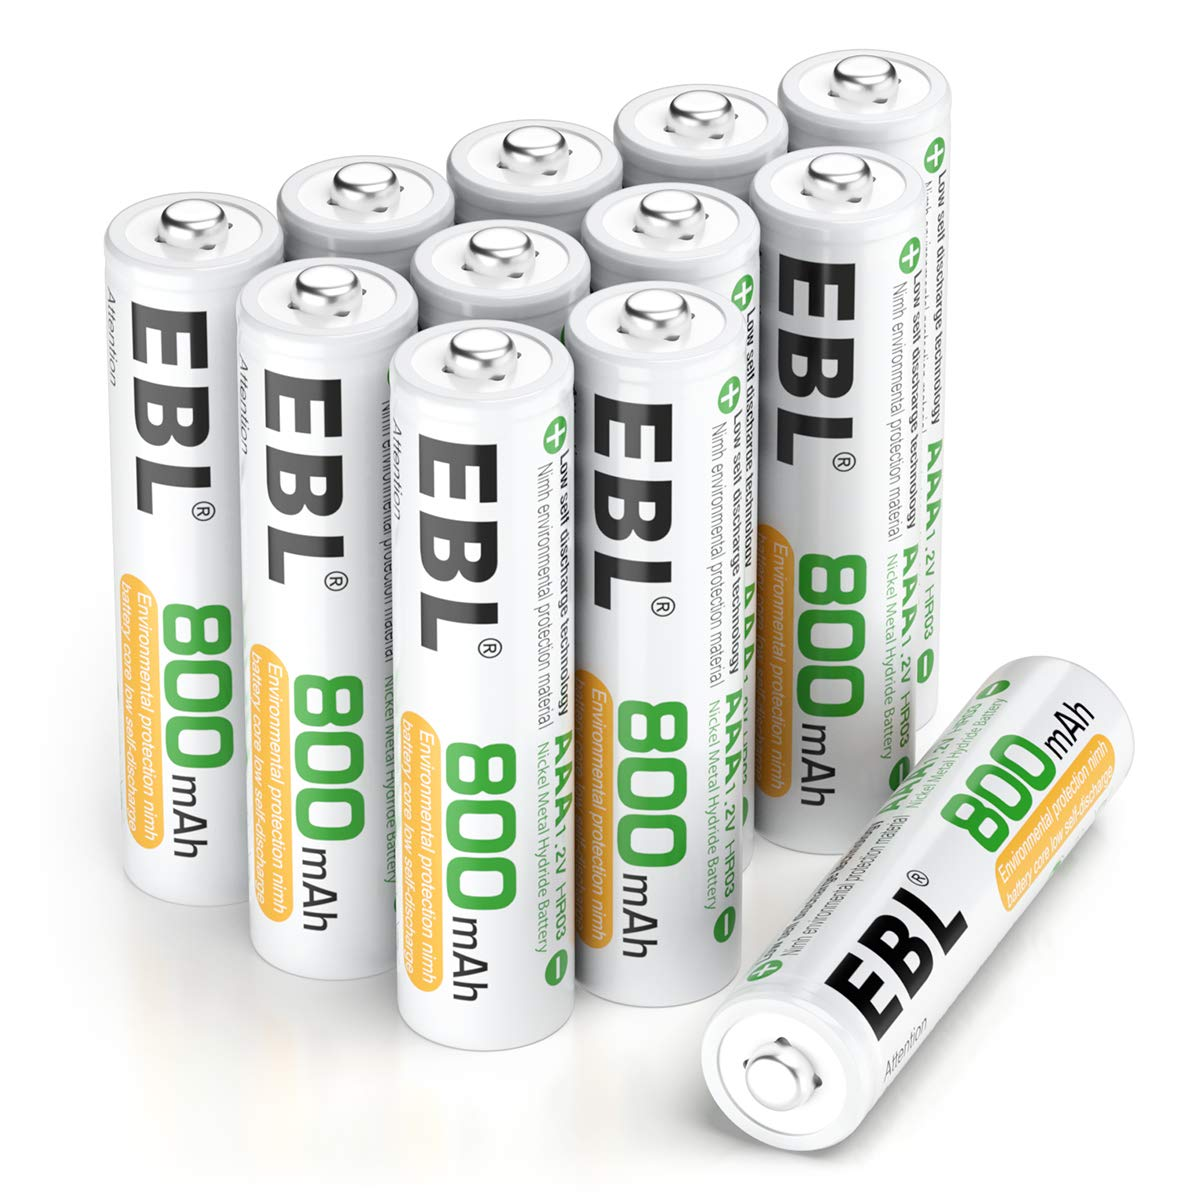 EBL 12 Counts Rechargeable AAA Batteries Home Basic 800mAh Battery with Portable Storage Box by EBL